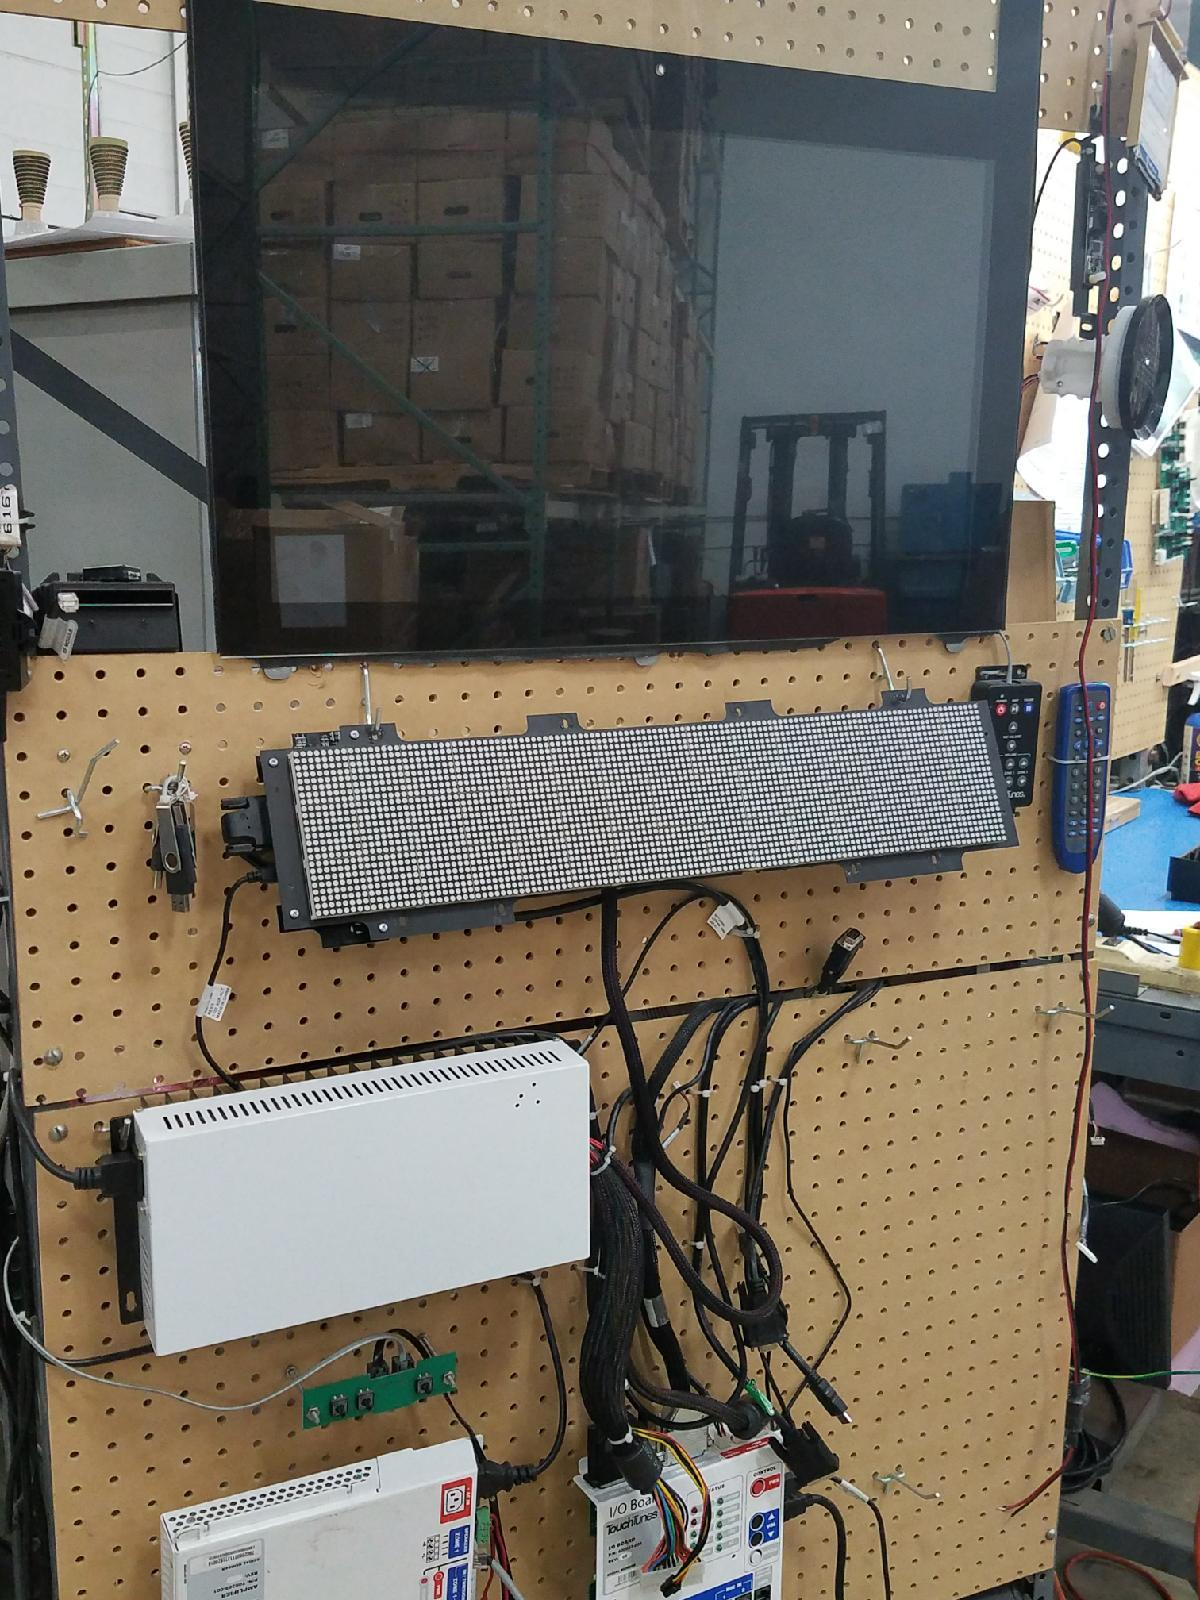 test fixture for digital signage repair and remanufacturing